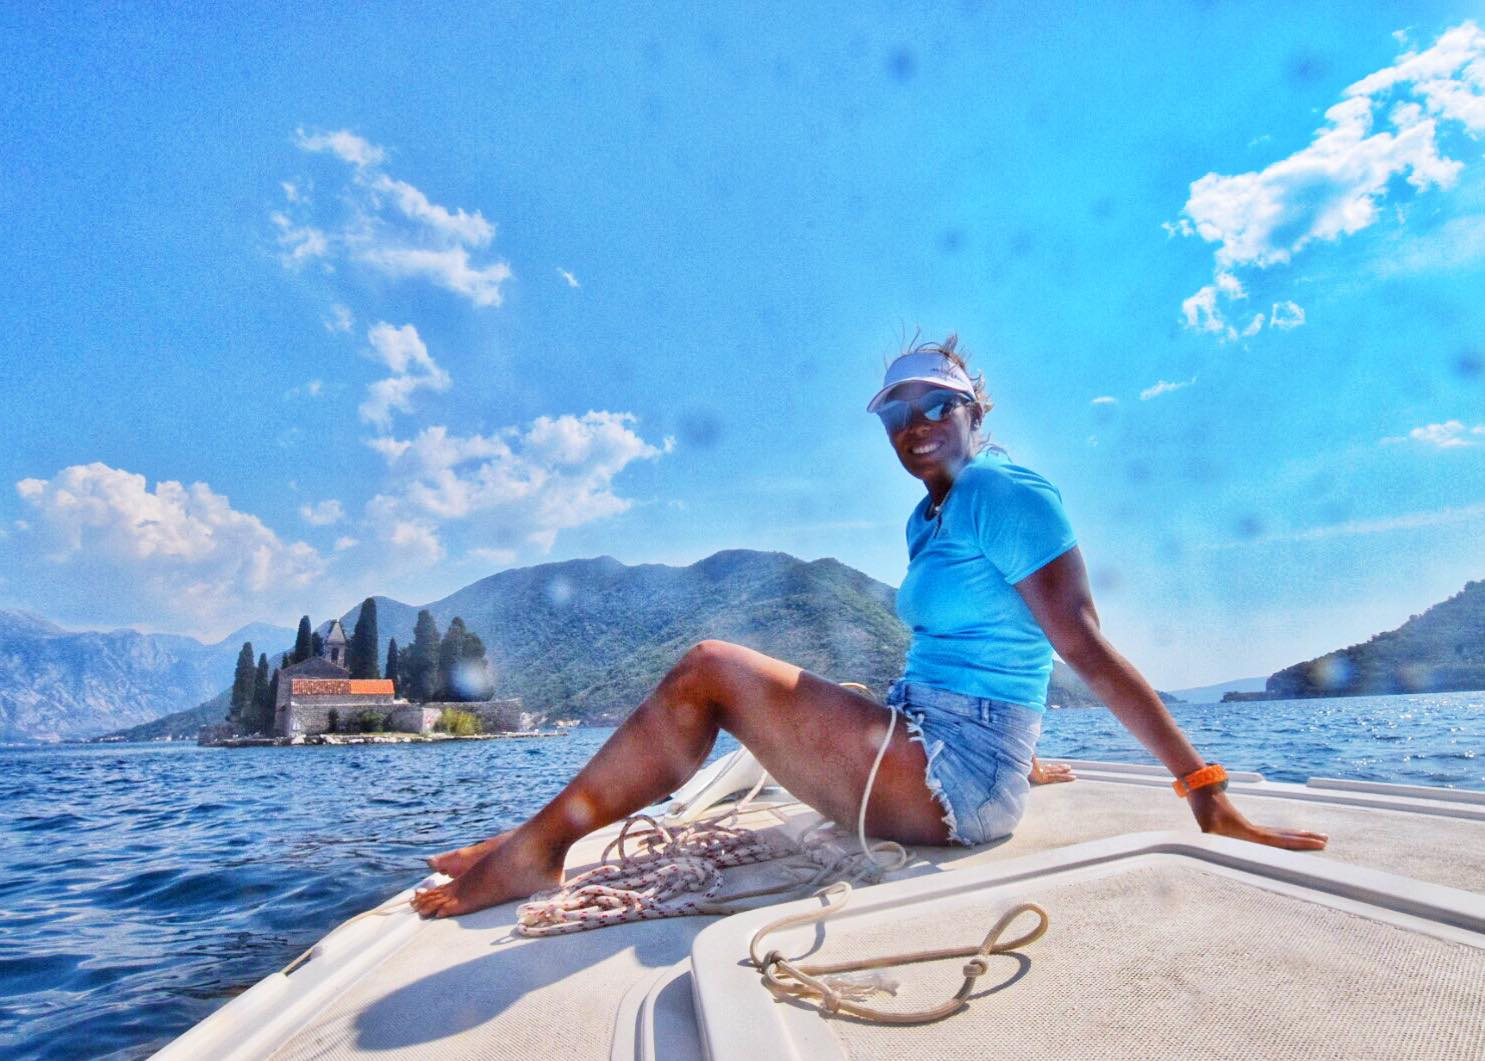 Kach Solo Travels Day 10: Boat Tour, Kayak and SUP Paddleboarding in Herceg Novi, Montenegro!⛵️